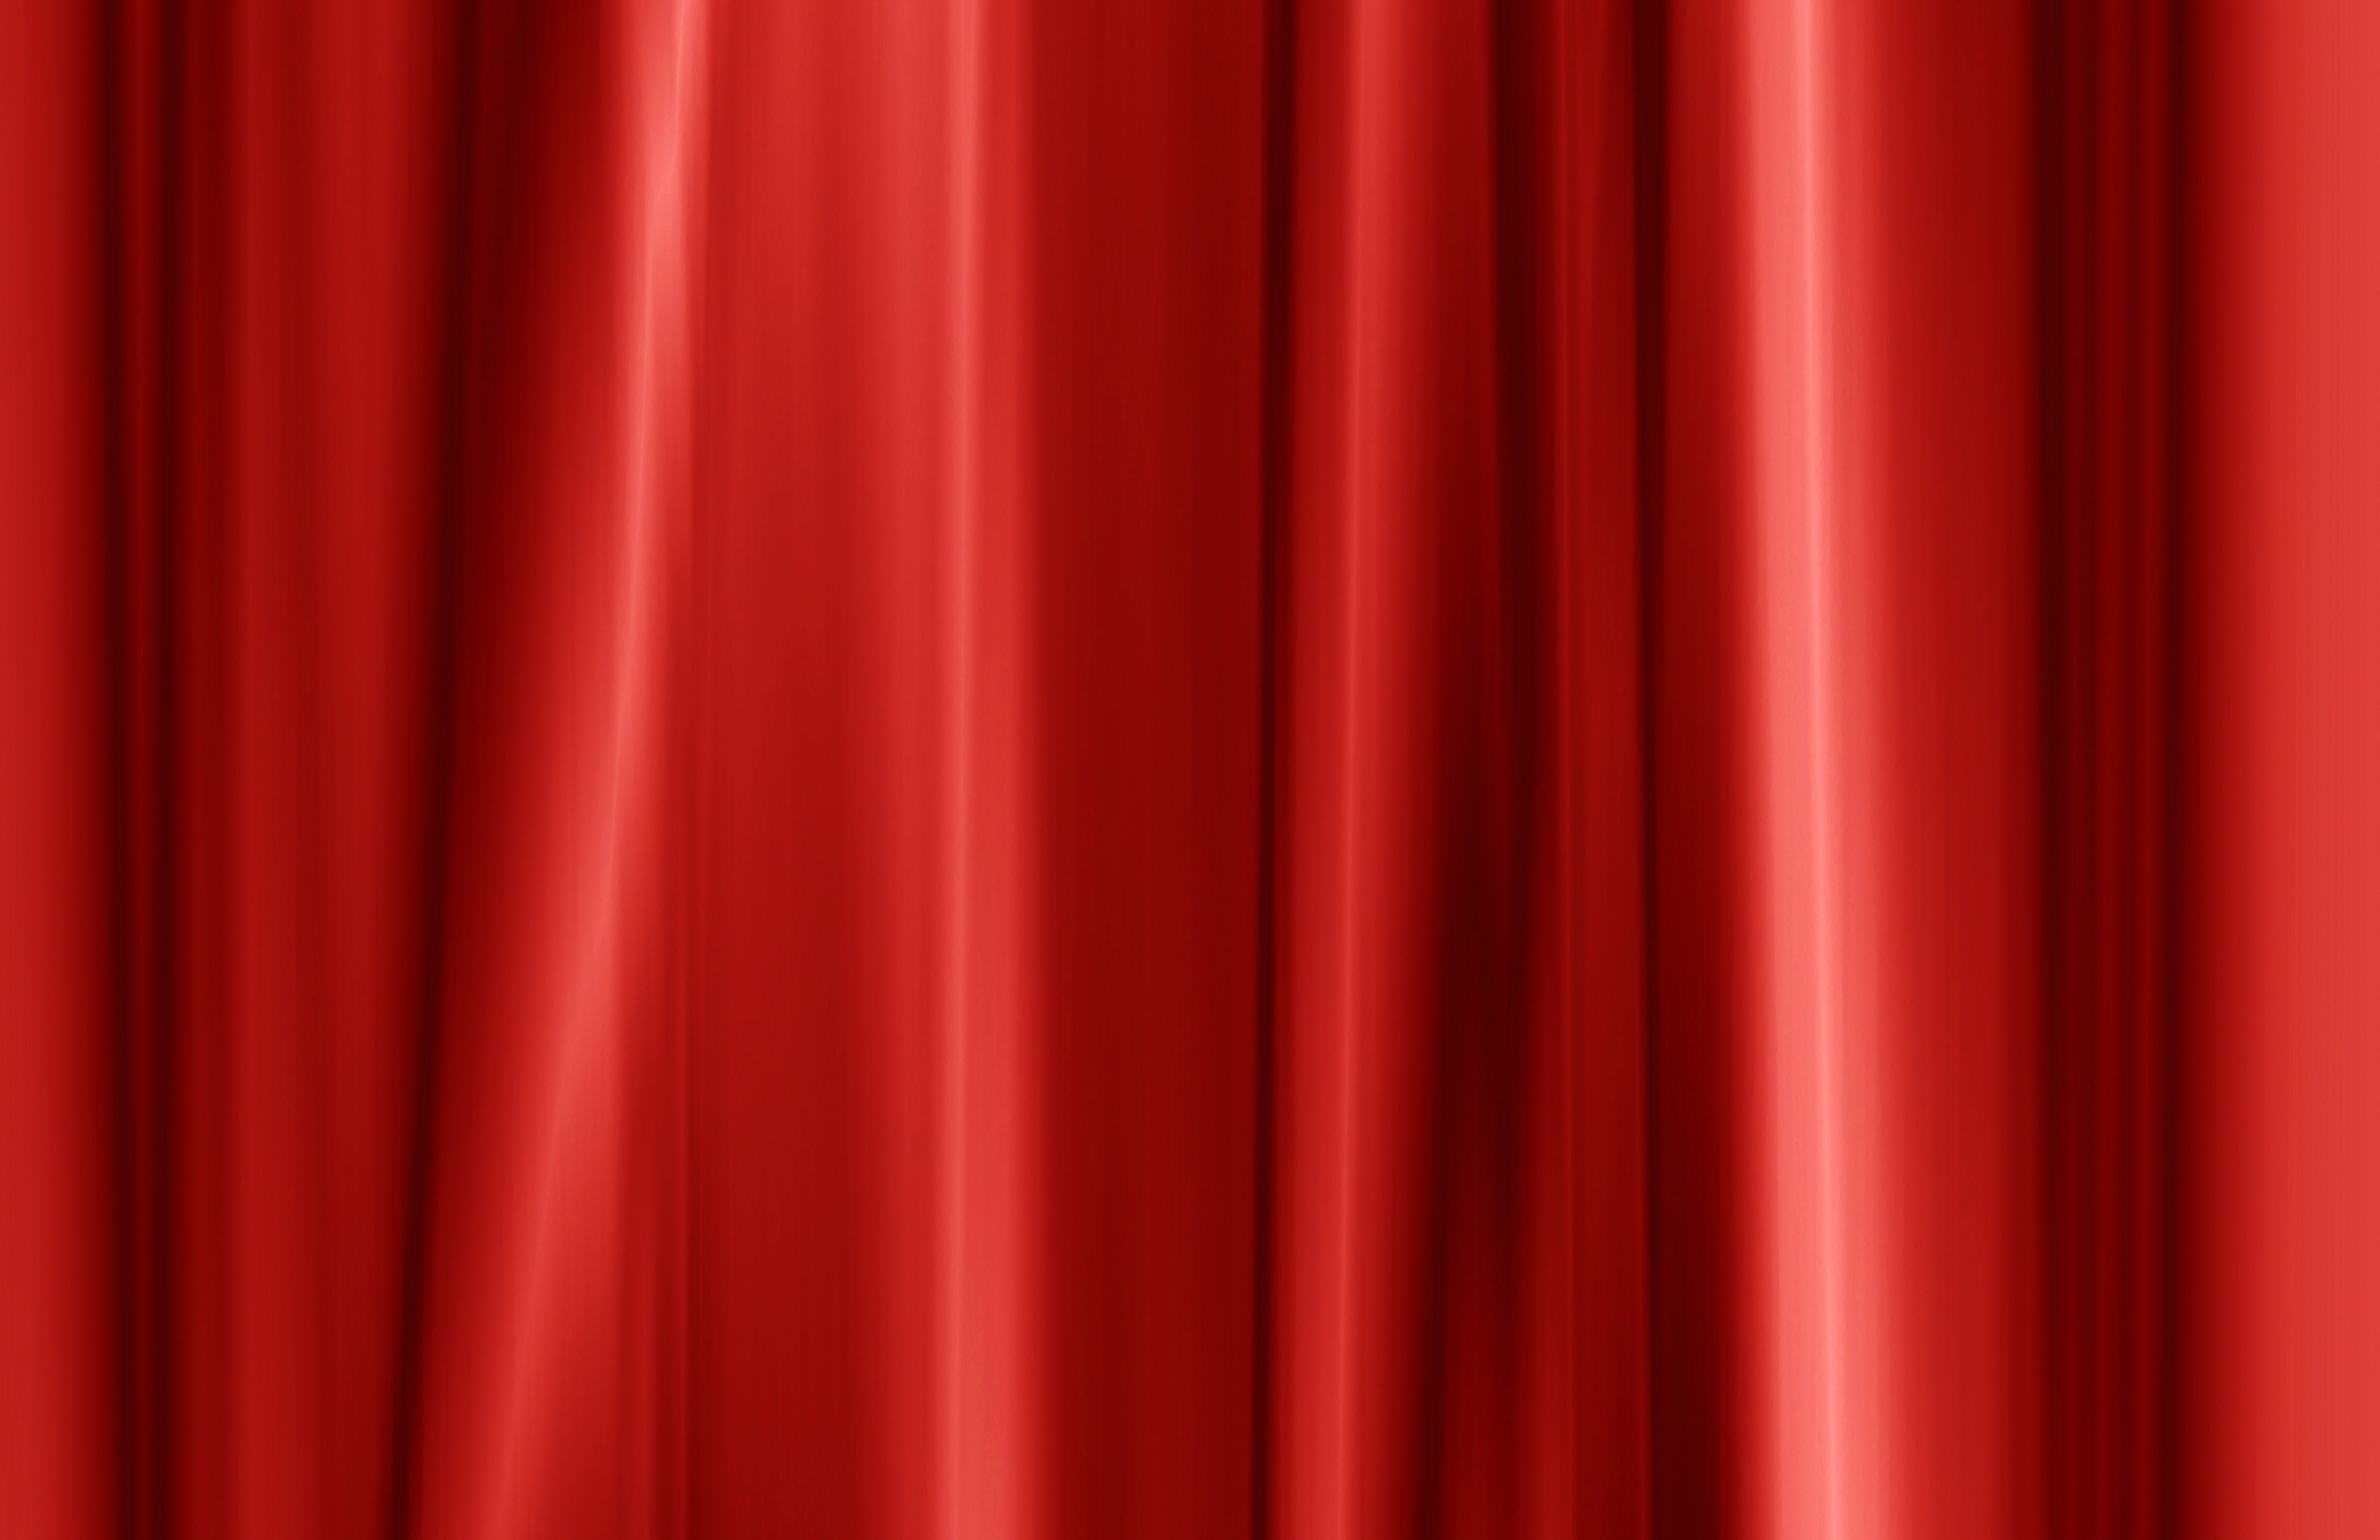 Free photo: Red curtain fabric texture - Silk, Shiny ...